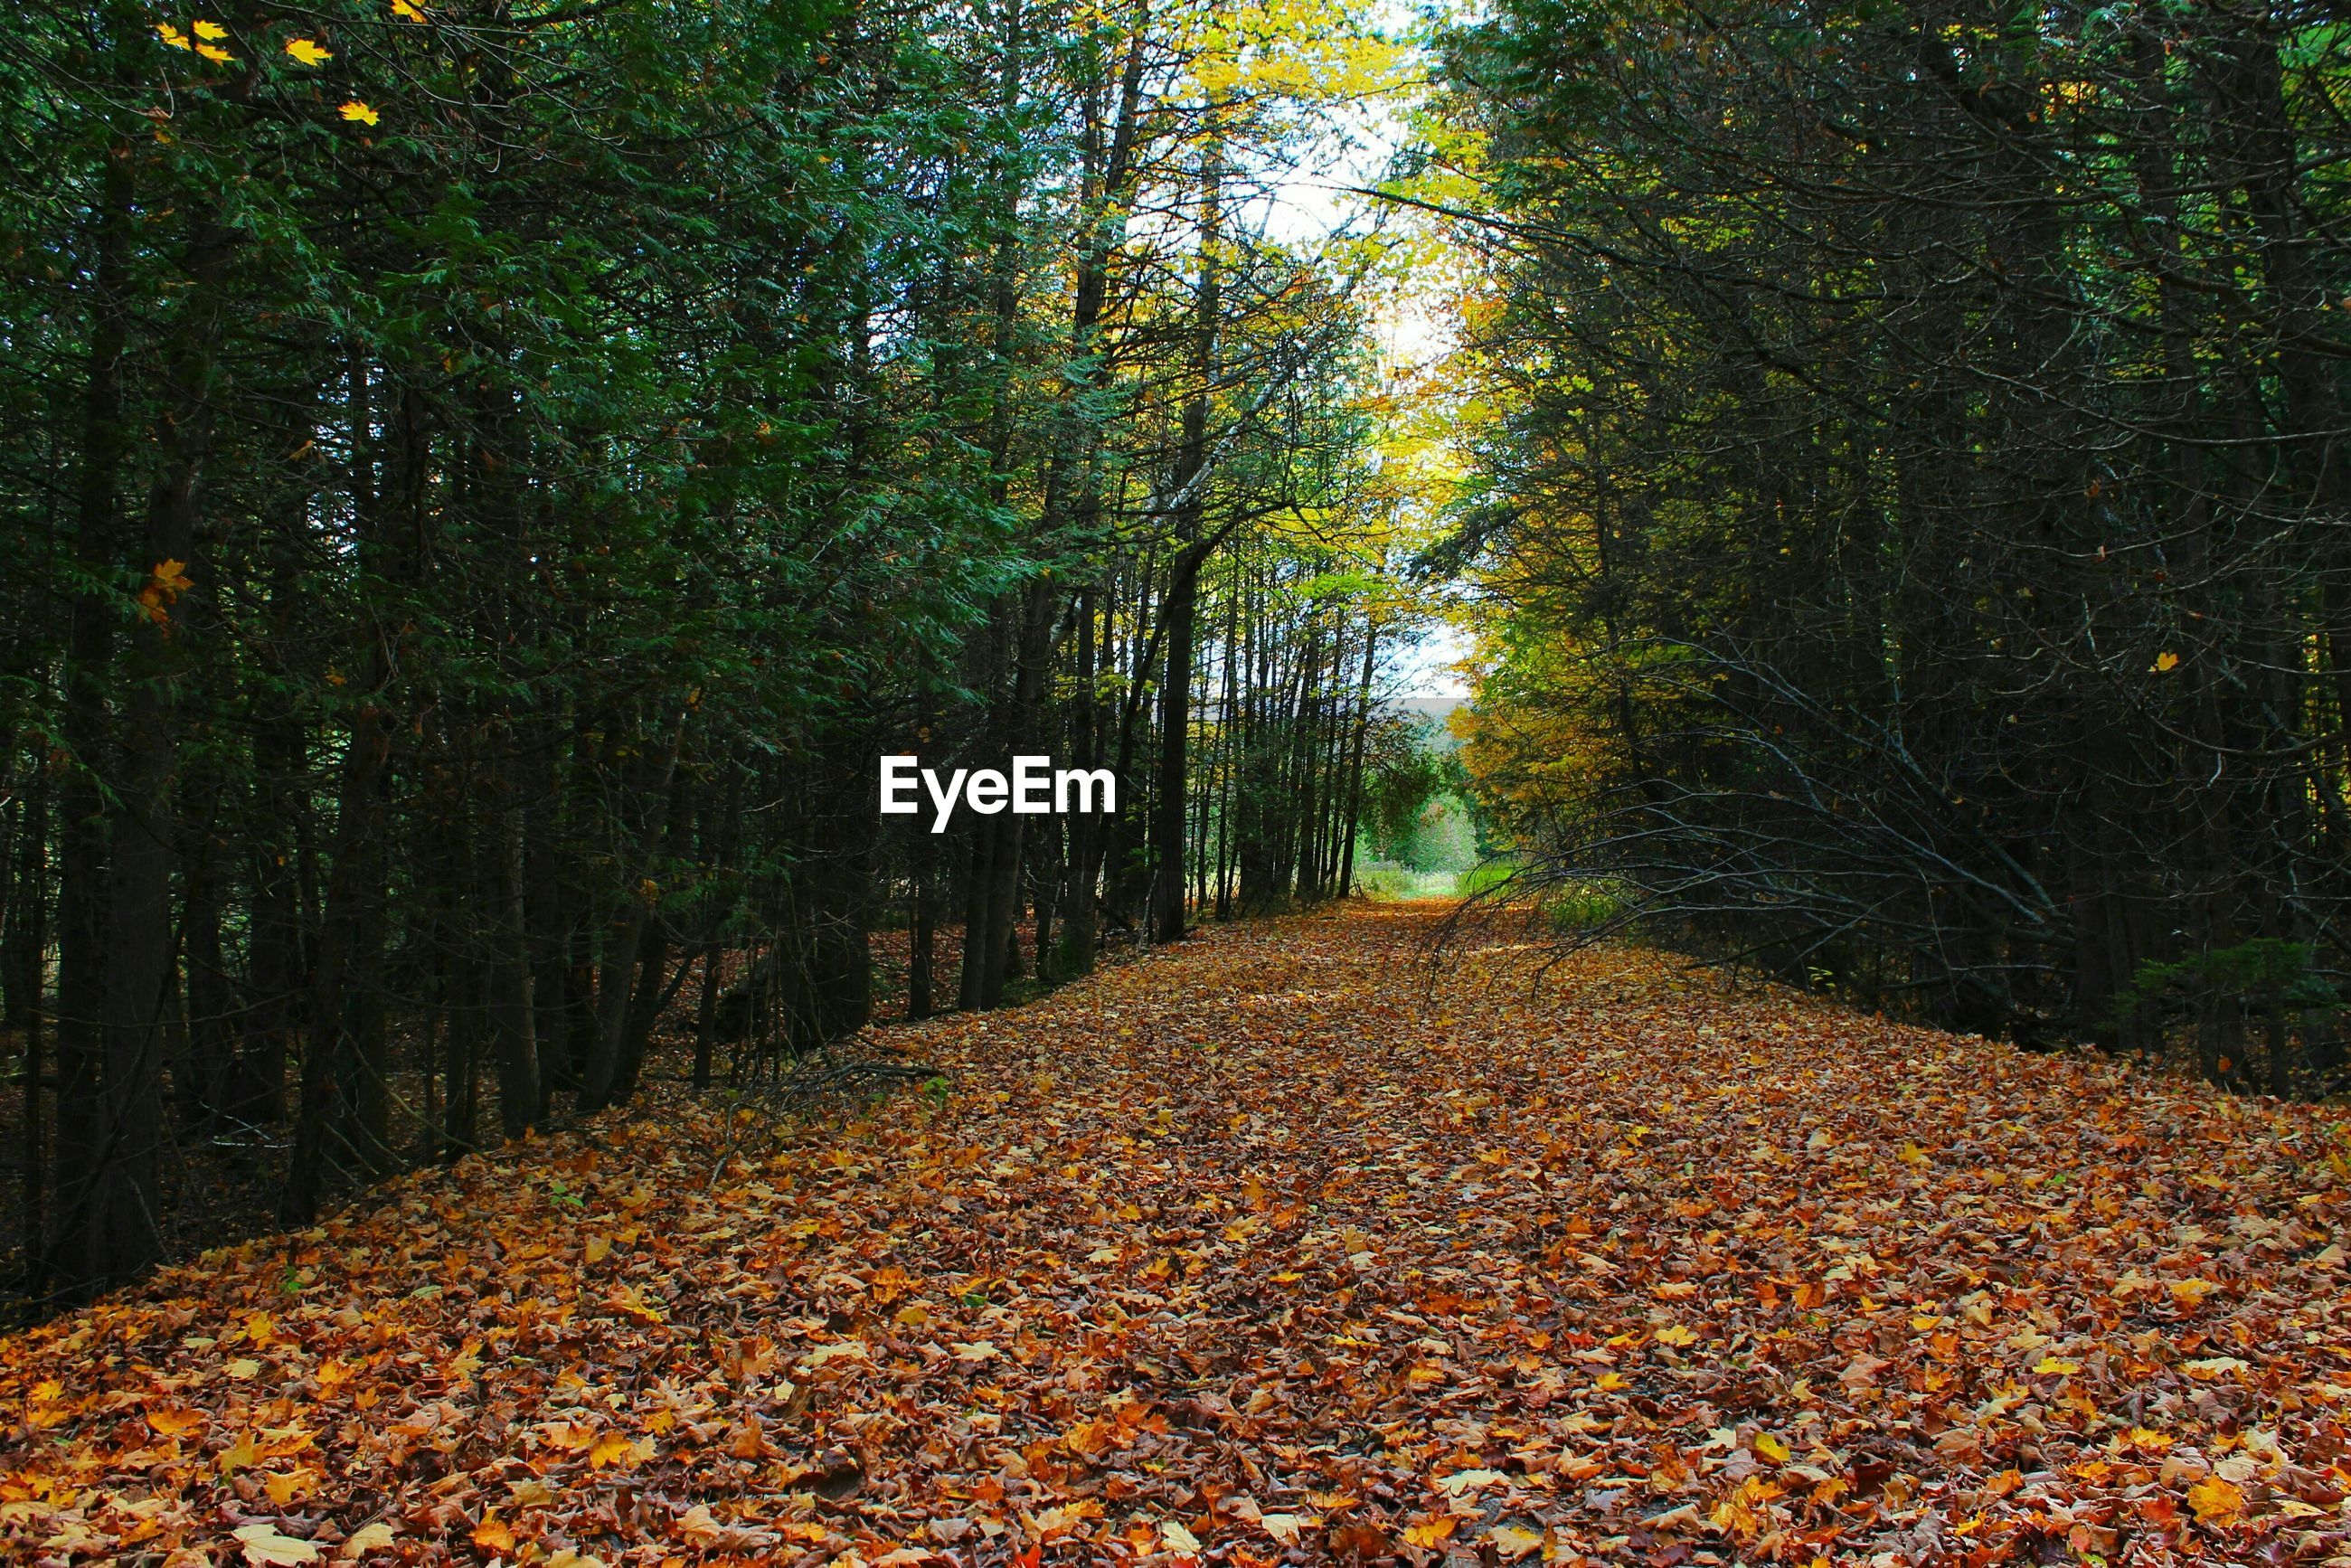 Trees amidst leaves on pathway in forest